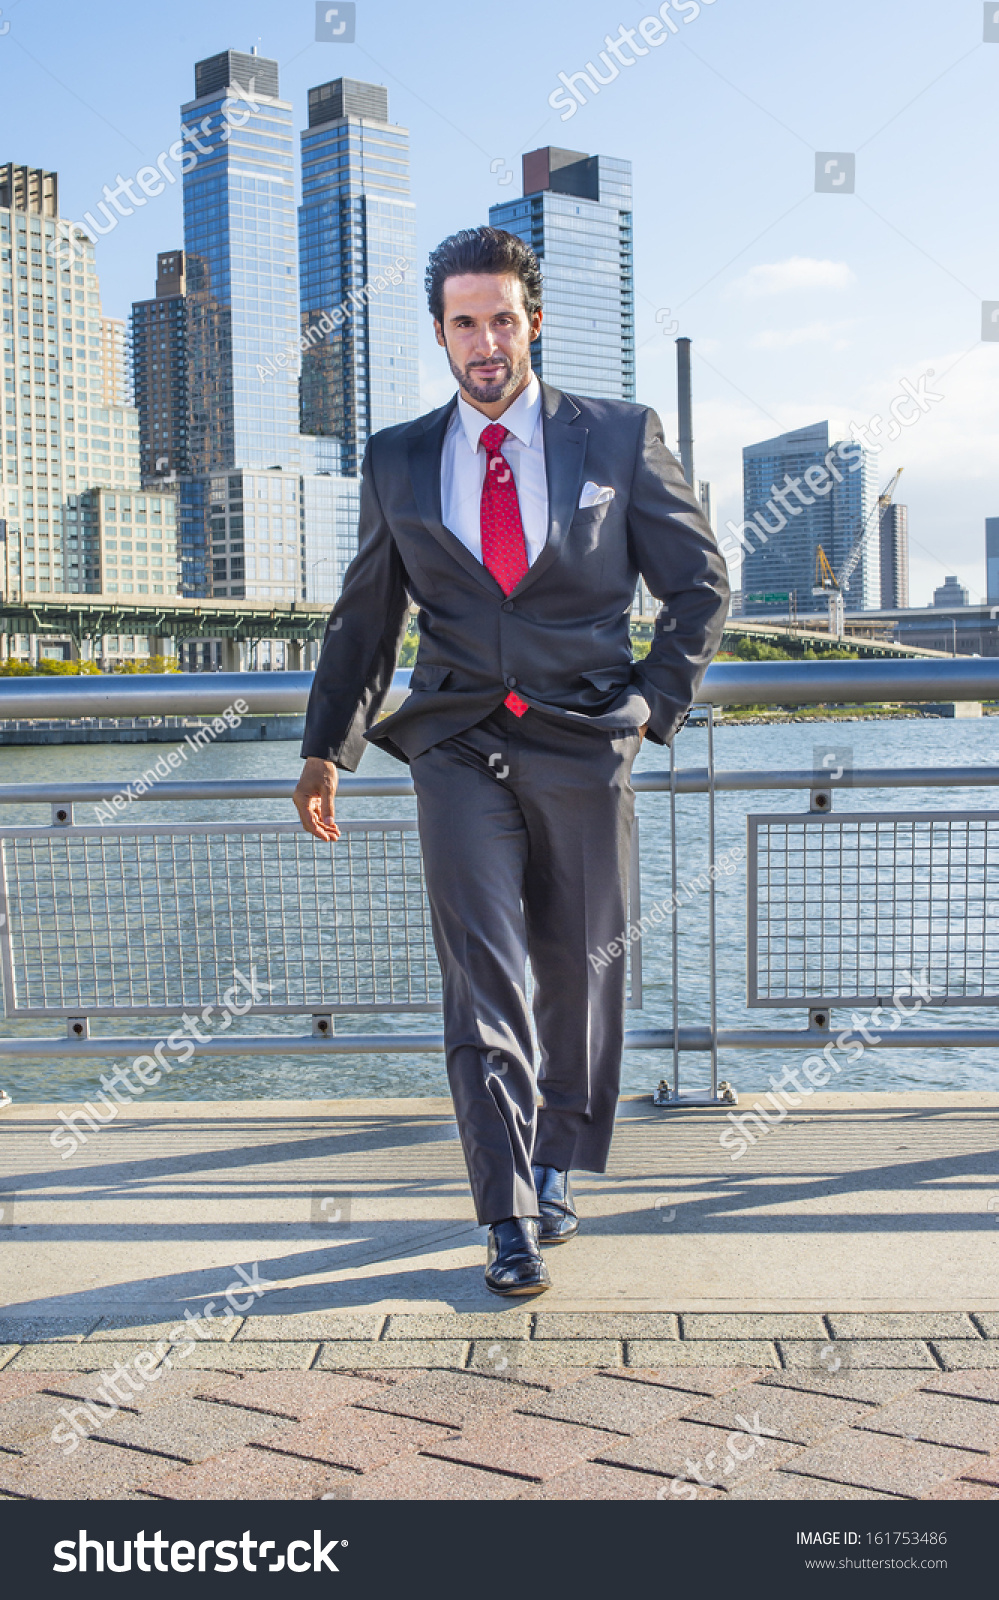 Dressing Black Suit Red Tie Handsome Stock Photo (Royalty Free ...